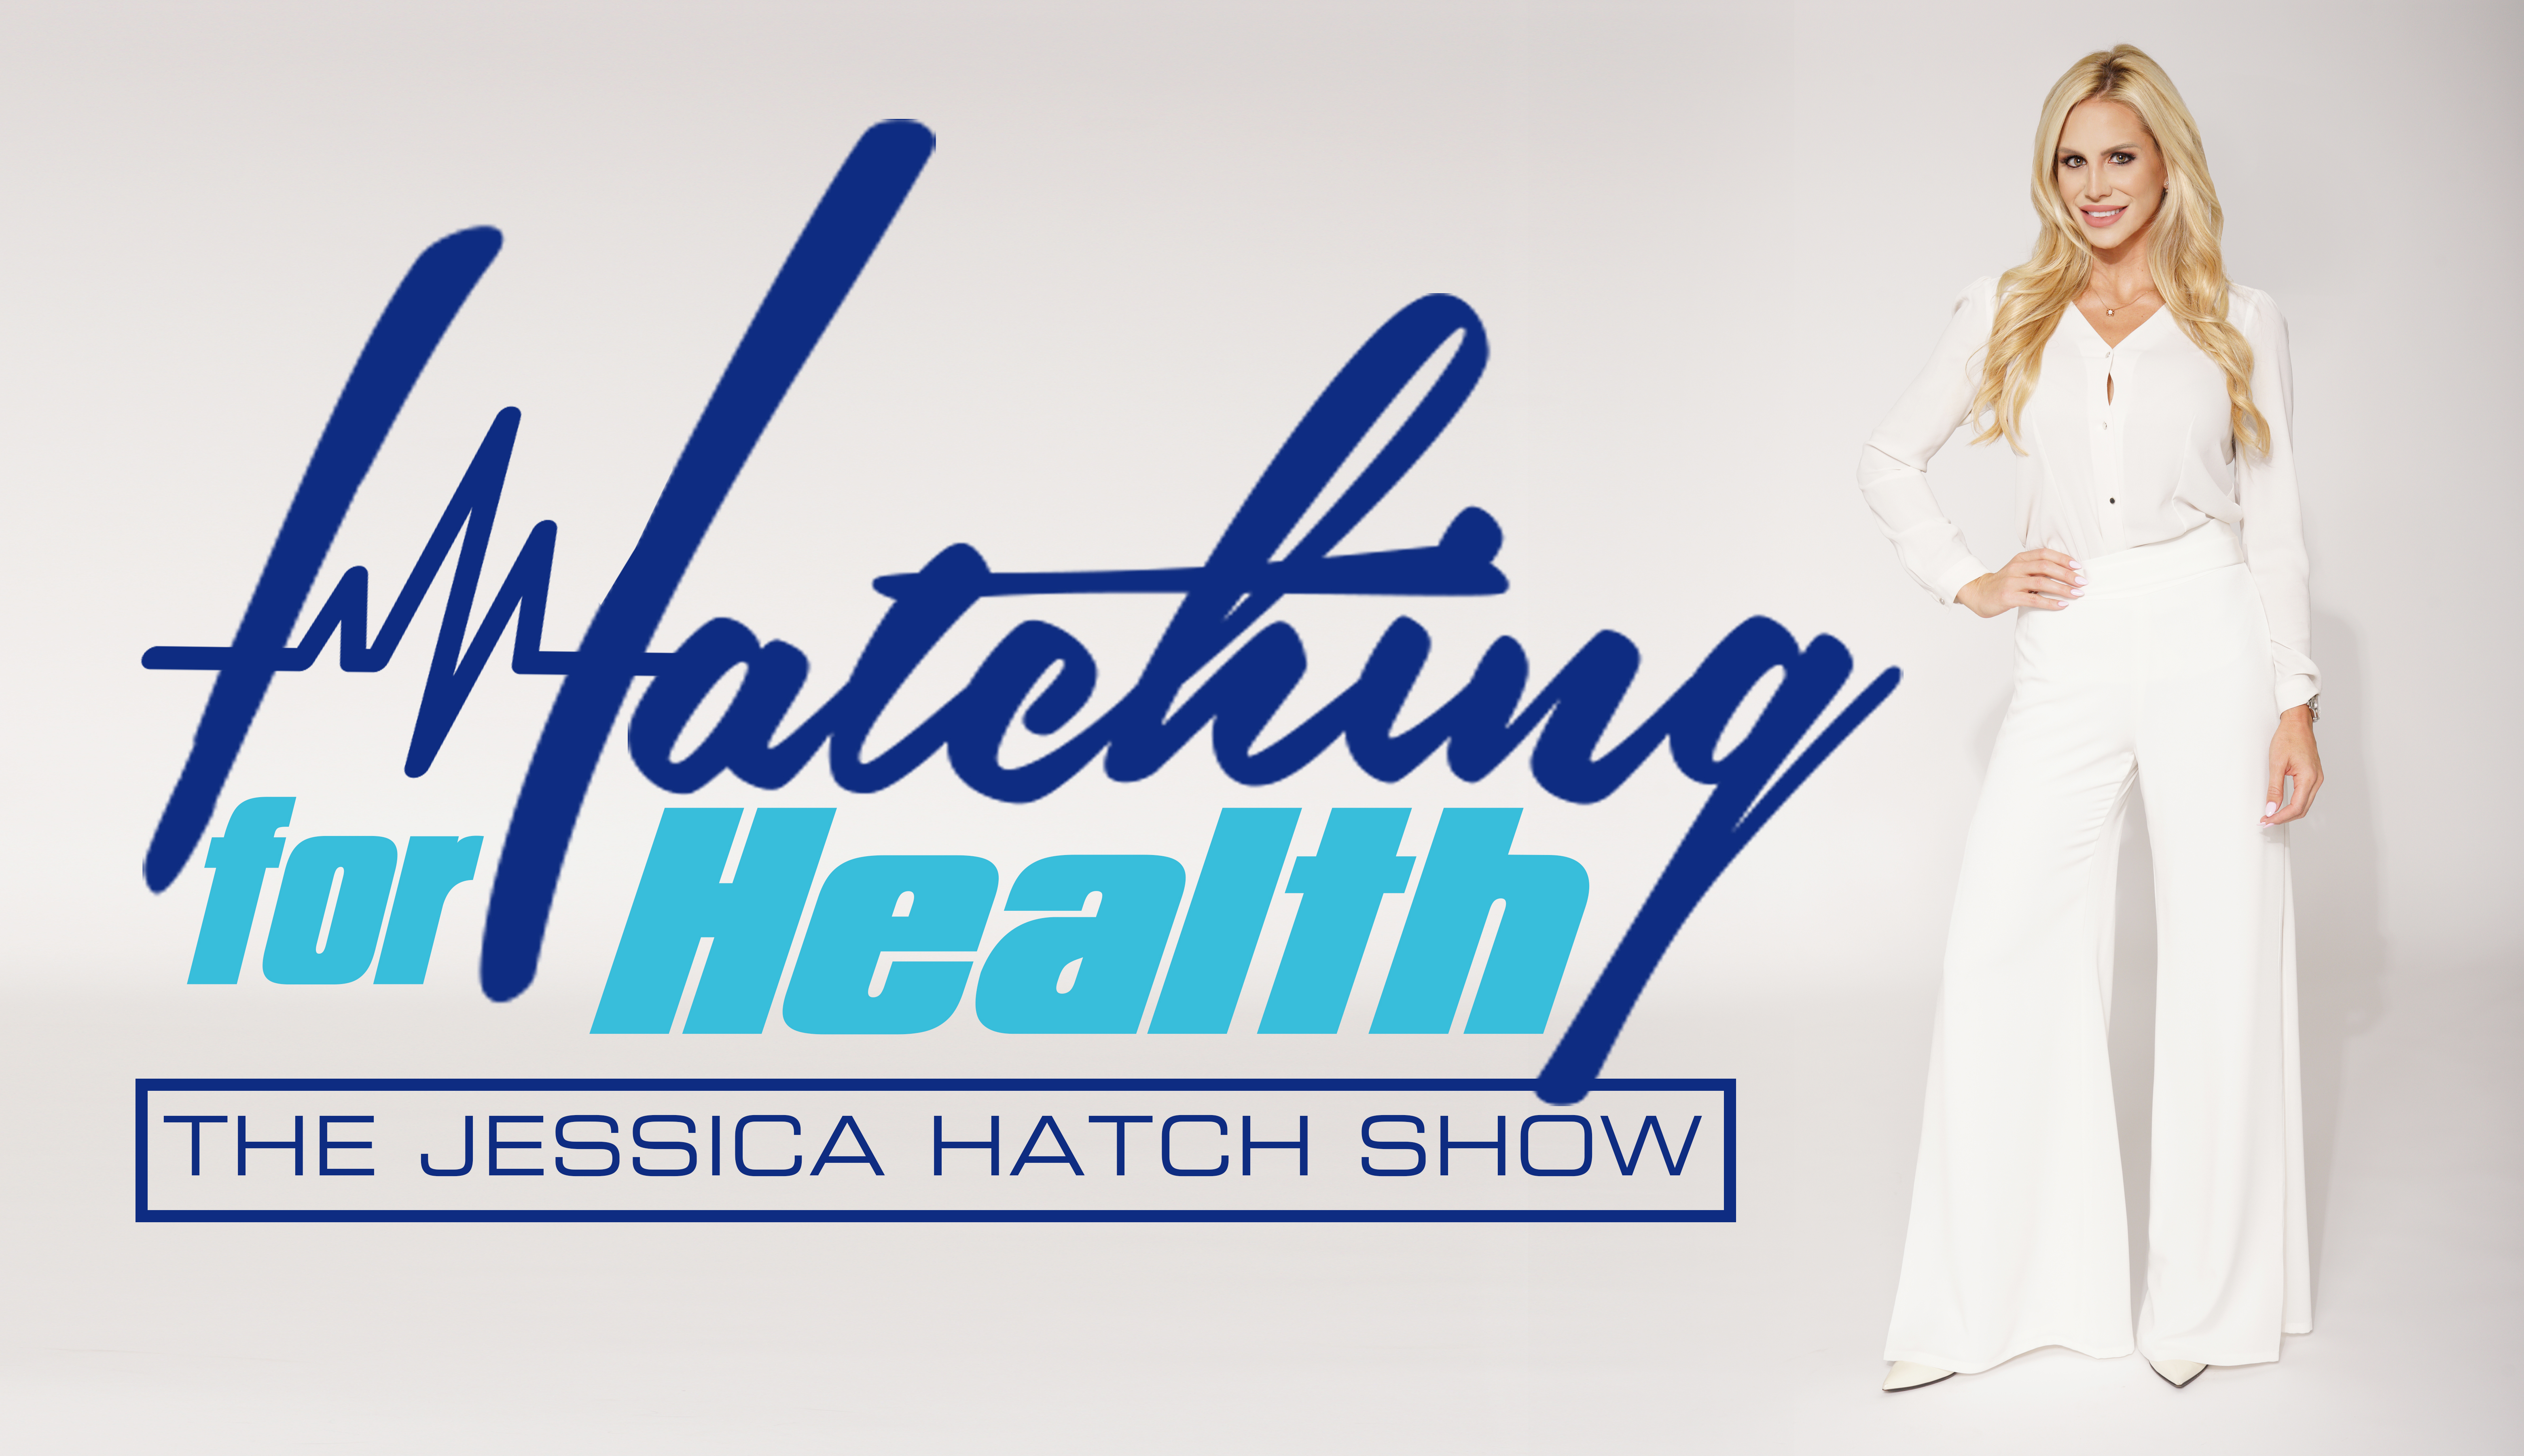 hatch-for-health---jessica-hatch---tv-display.jpg